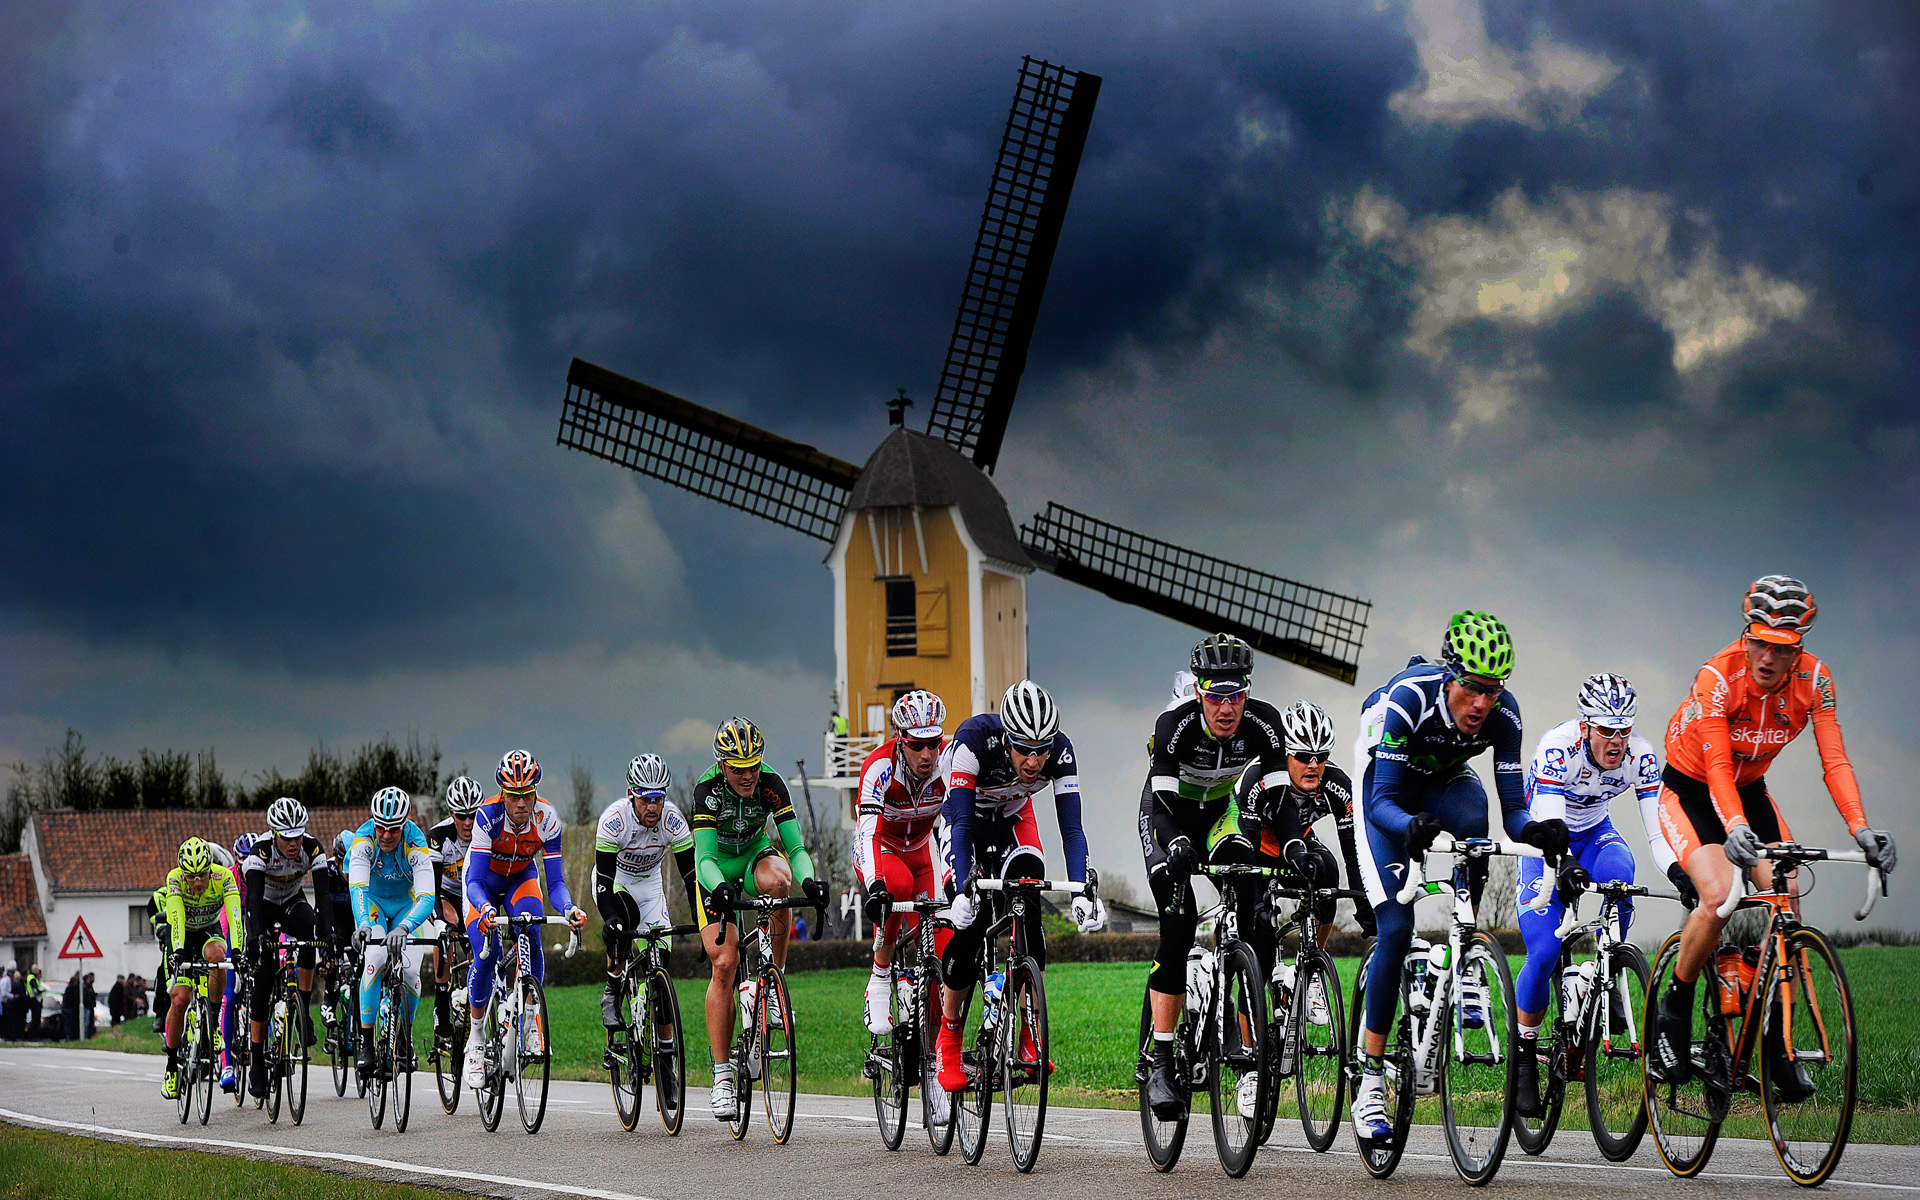 Photos - Page 4 AmstelGoldRace2013_freecomputerdesktopwallpaper_1920